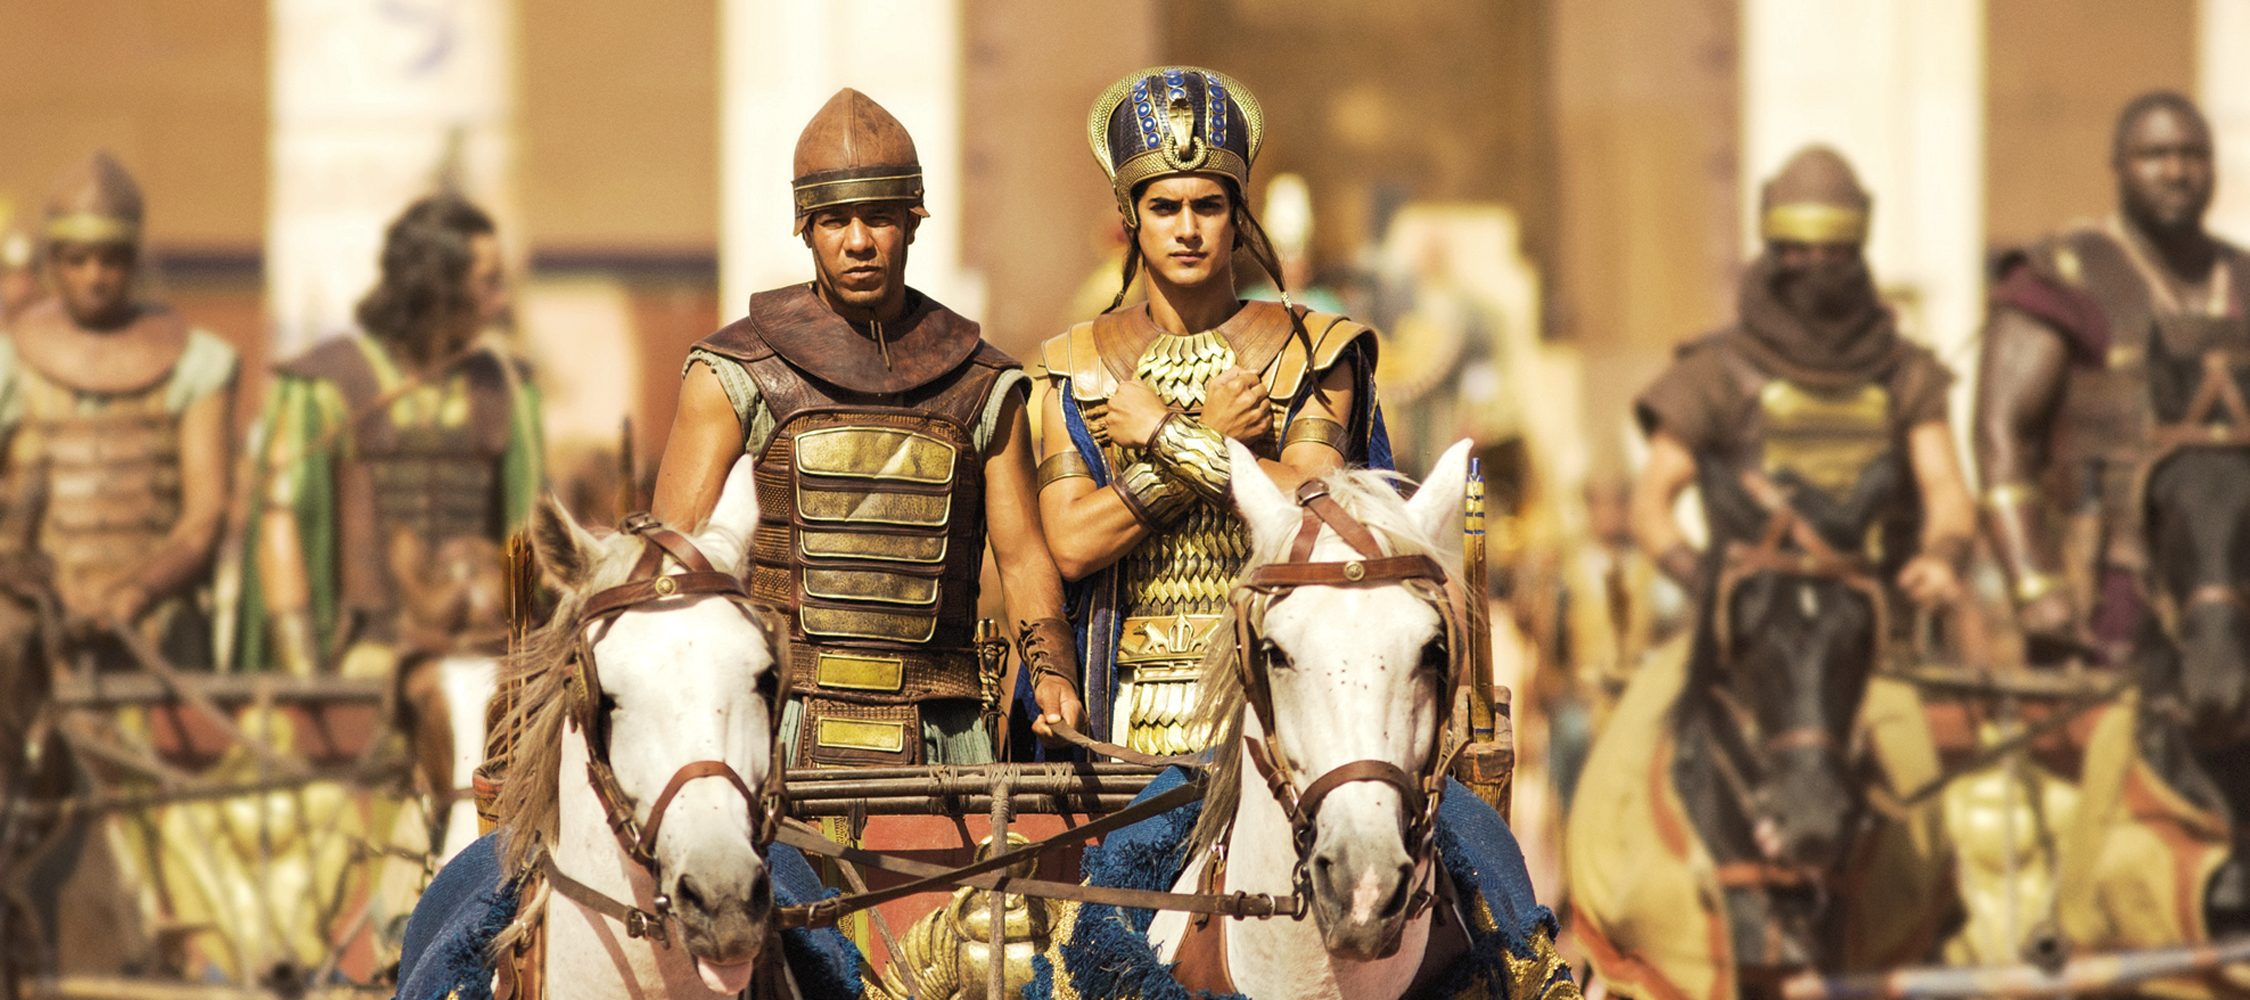 TUT BRINGS IN 11.4 MILLION TOTAL VIEWERS OVER 3 NIGHTS